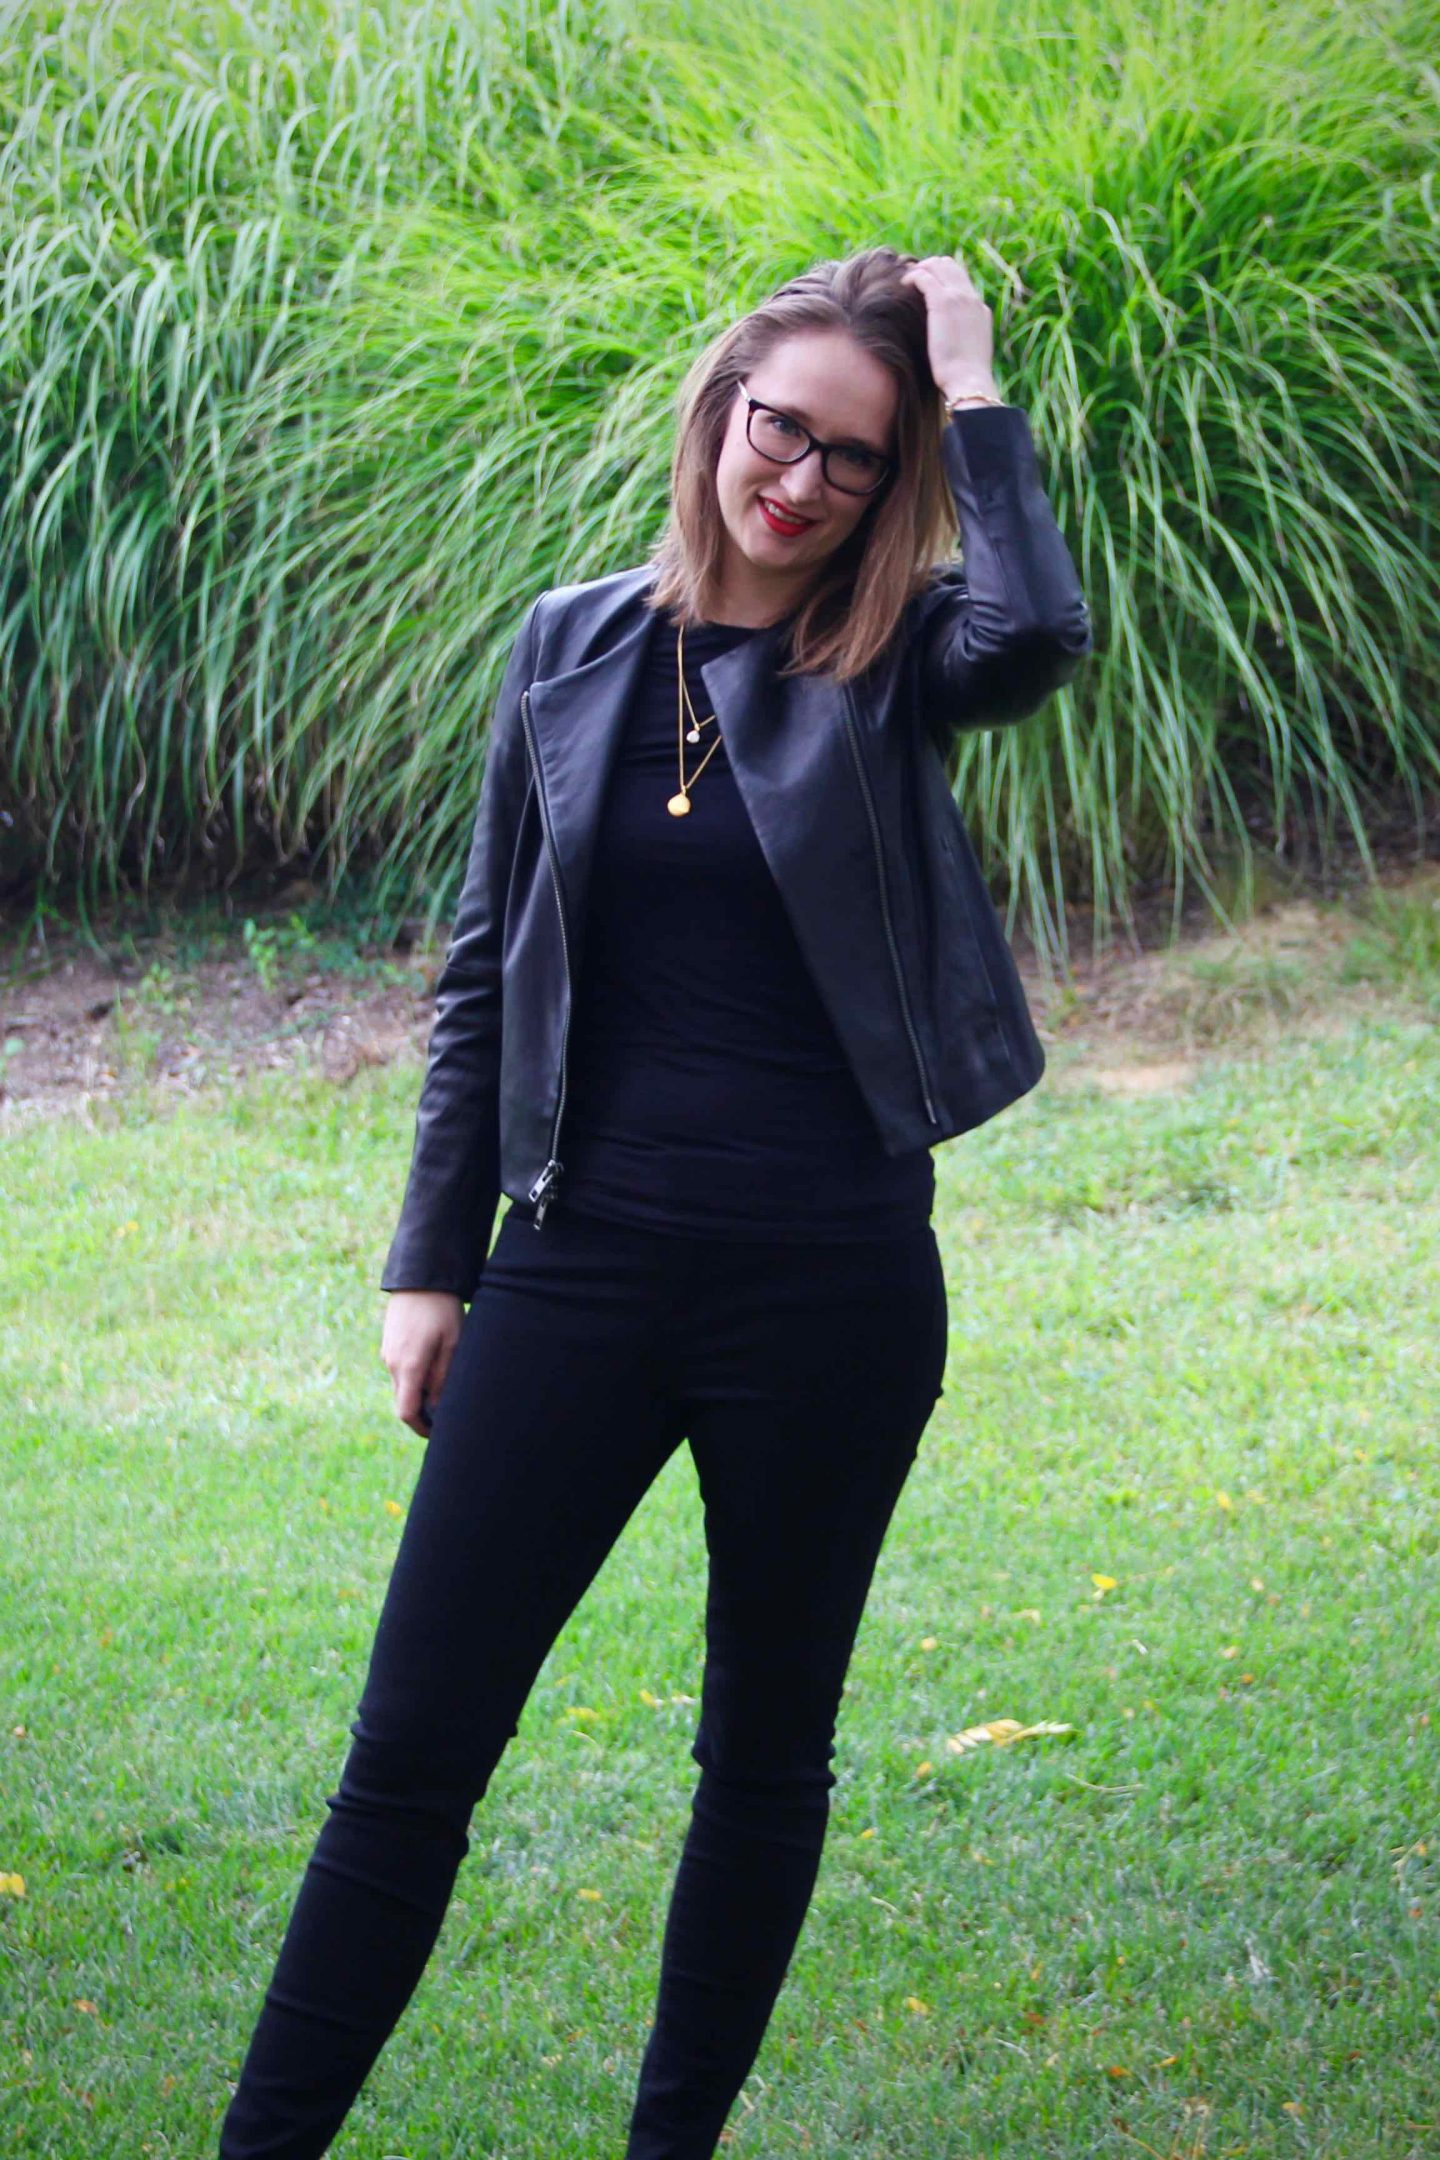 All Black Leather Style | 3 Ways to Style a Leather Jacket | The Spectacular Adventurer